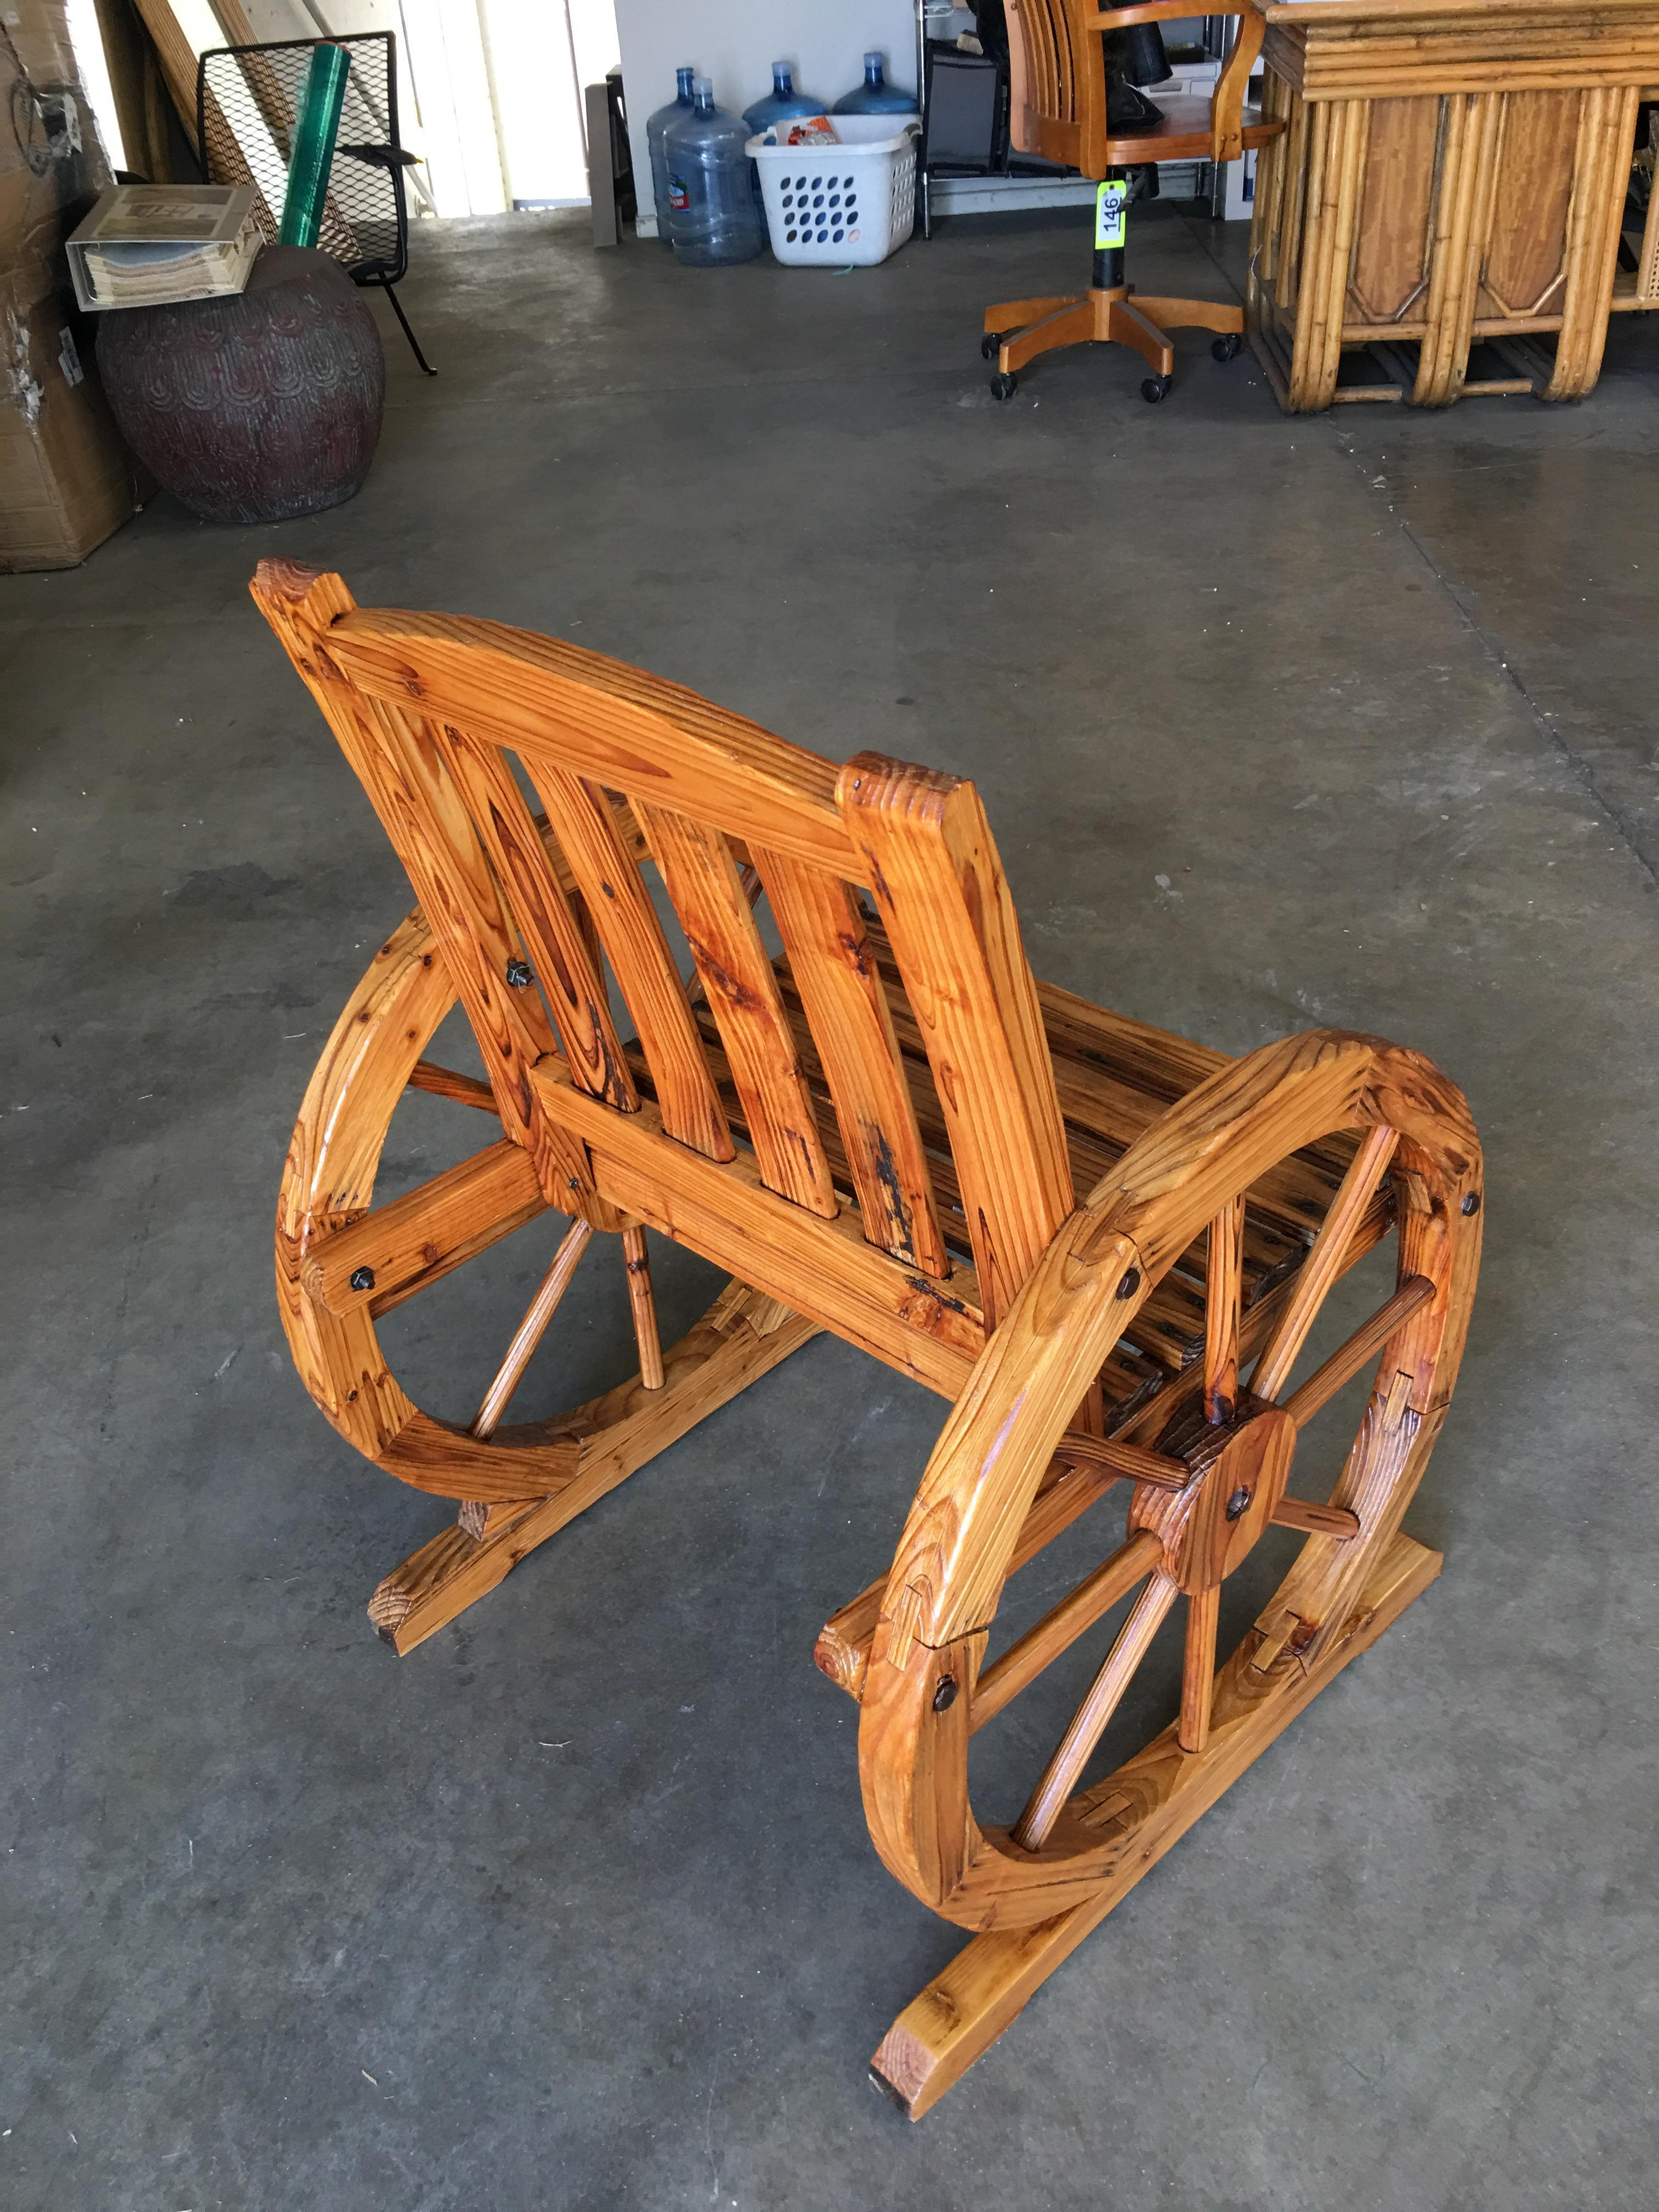 Western Folk Art Wagon Wheel Table And Chairs Set For Jpg 768x1024 Vintage 1950s